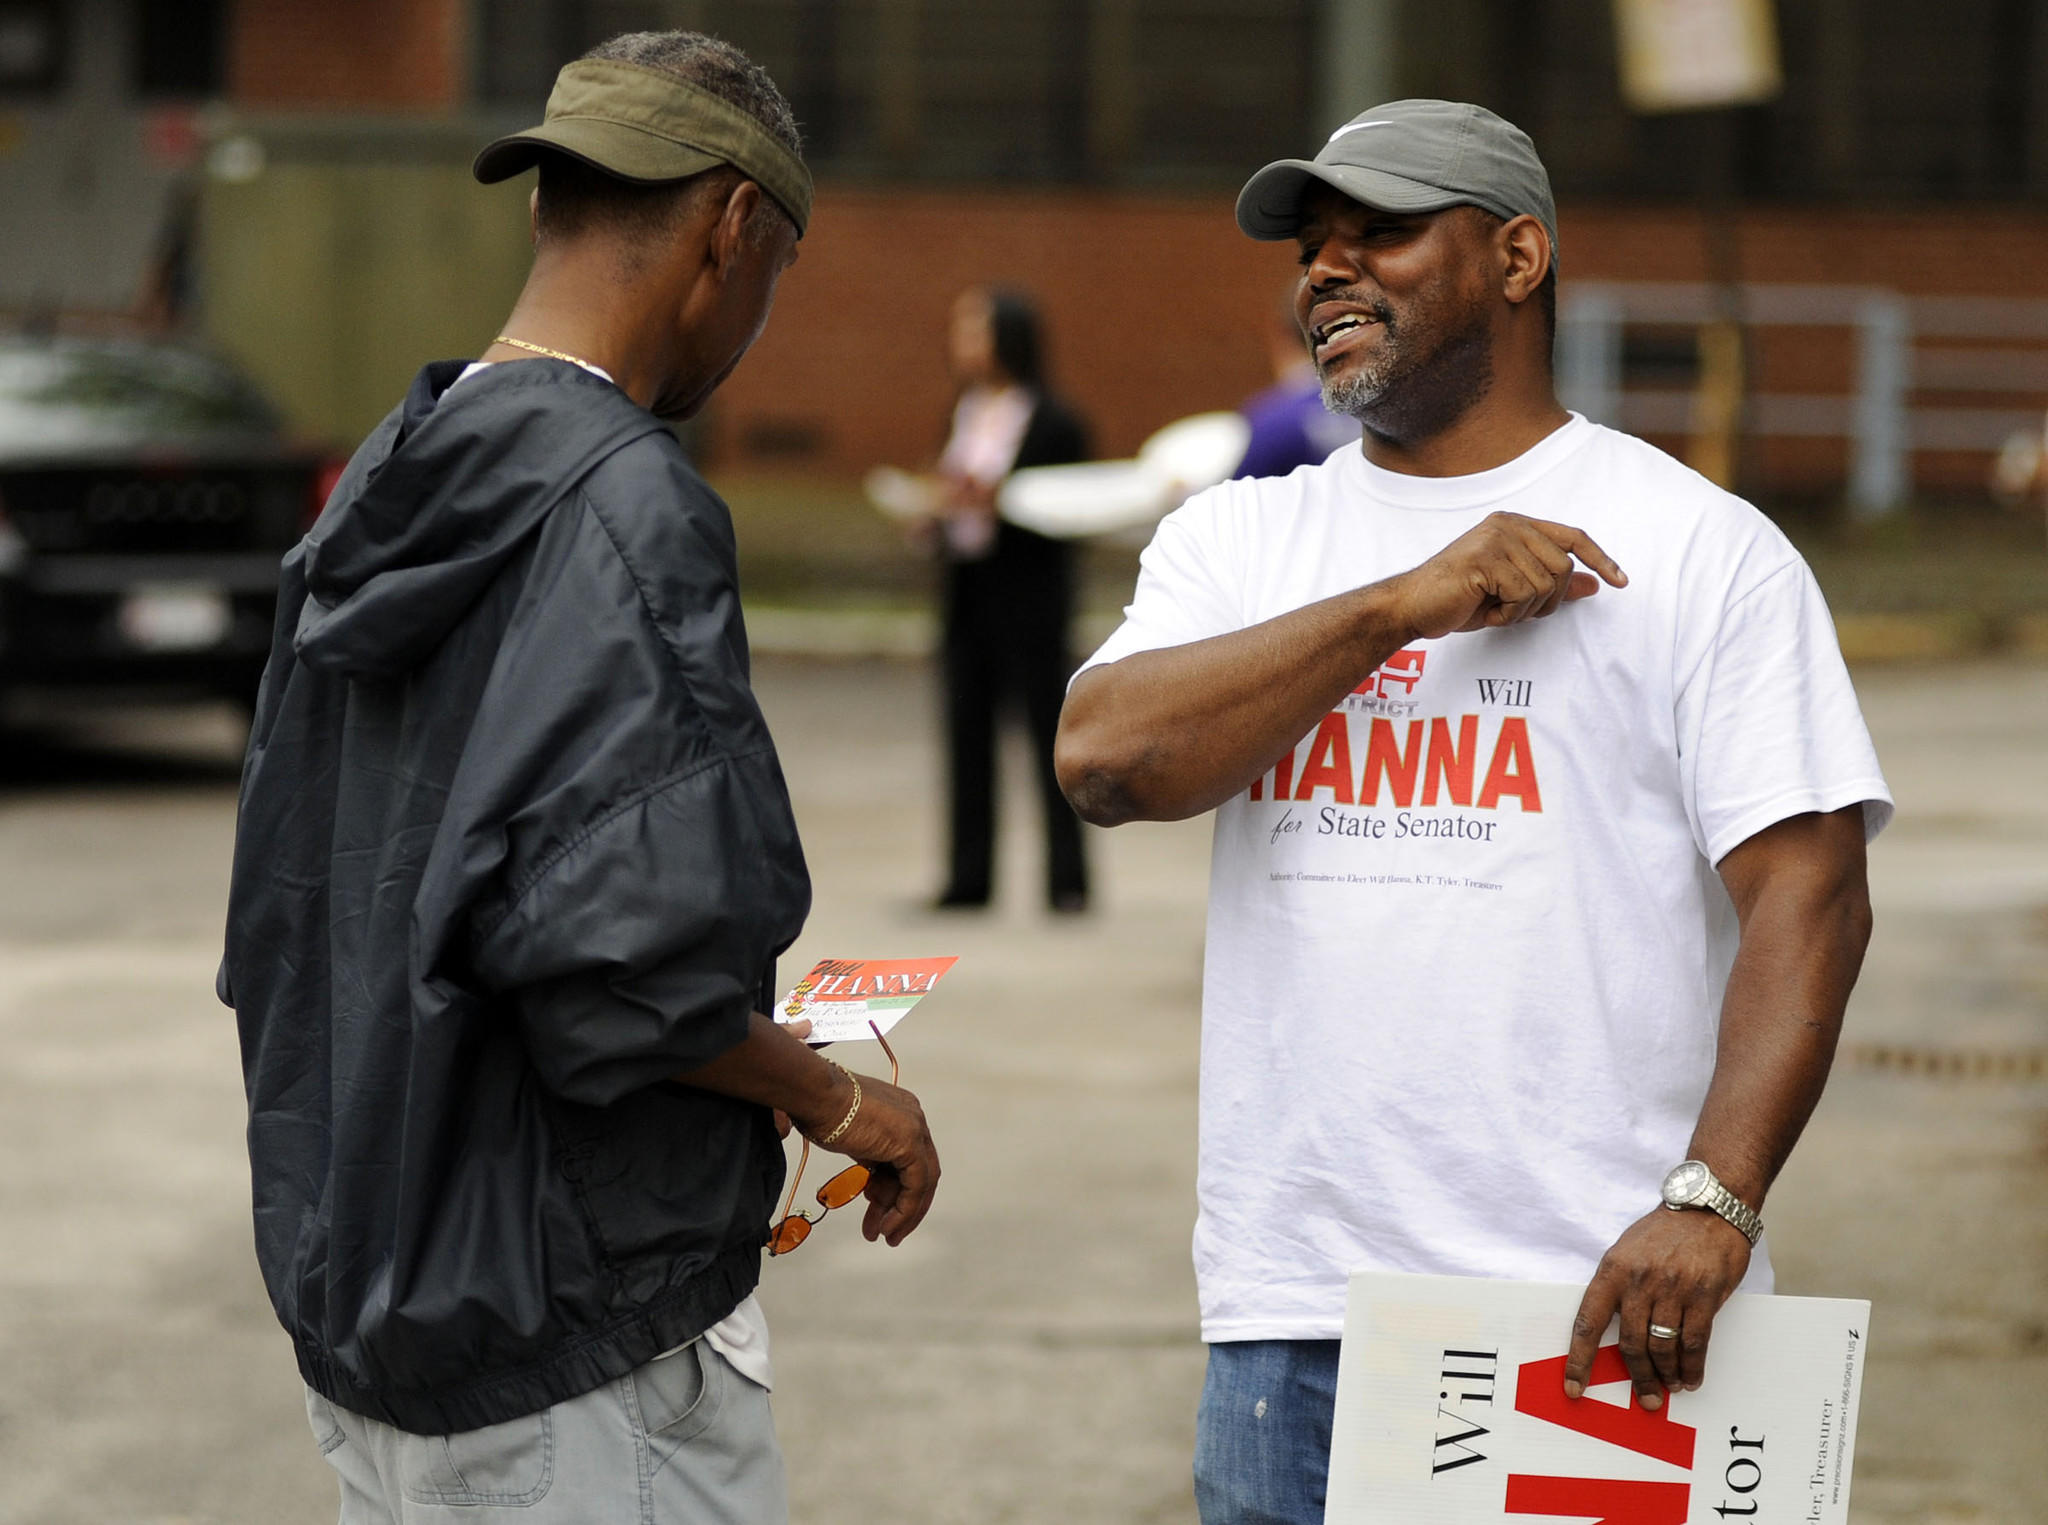 Will Hanna, a candidate for State Senator, speaks to Nathaniel Evans Jr. before he heads into cast his vote at an early voting center at the Public Safety Training Facility in Baltimore. Hanna is wanted on charges of theft in Texas.